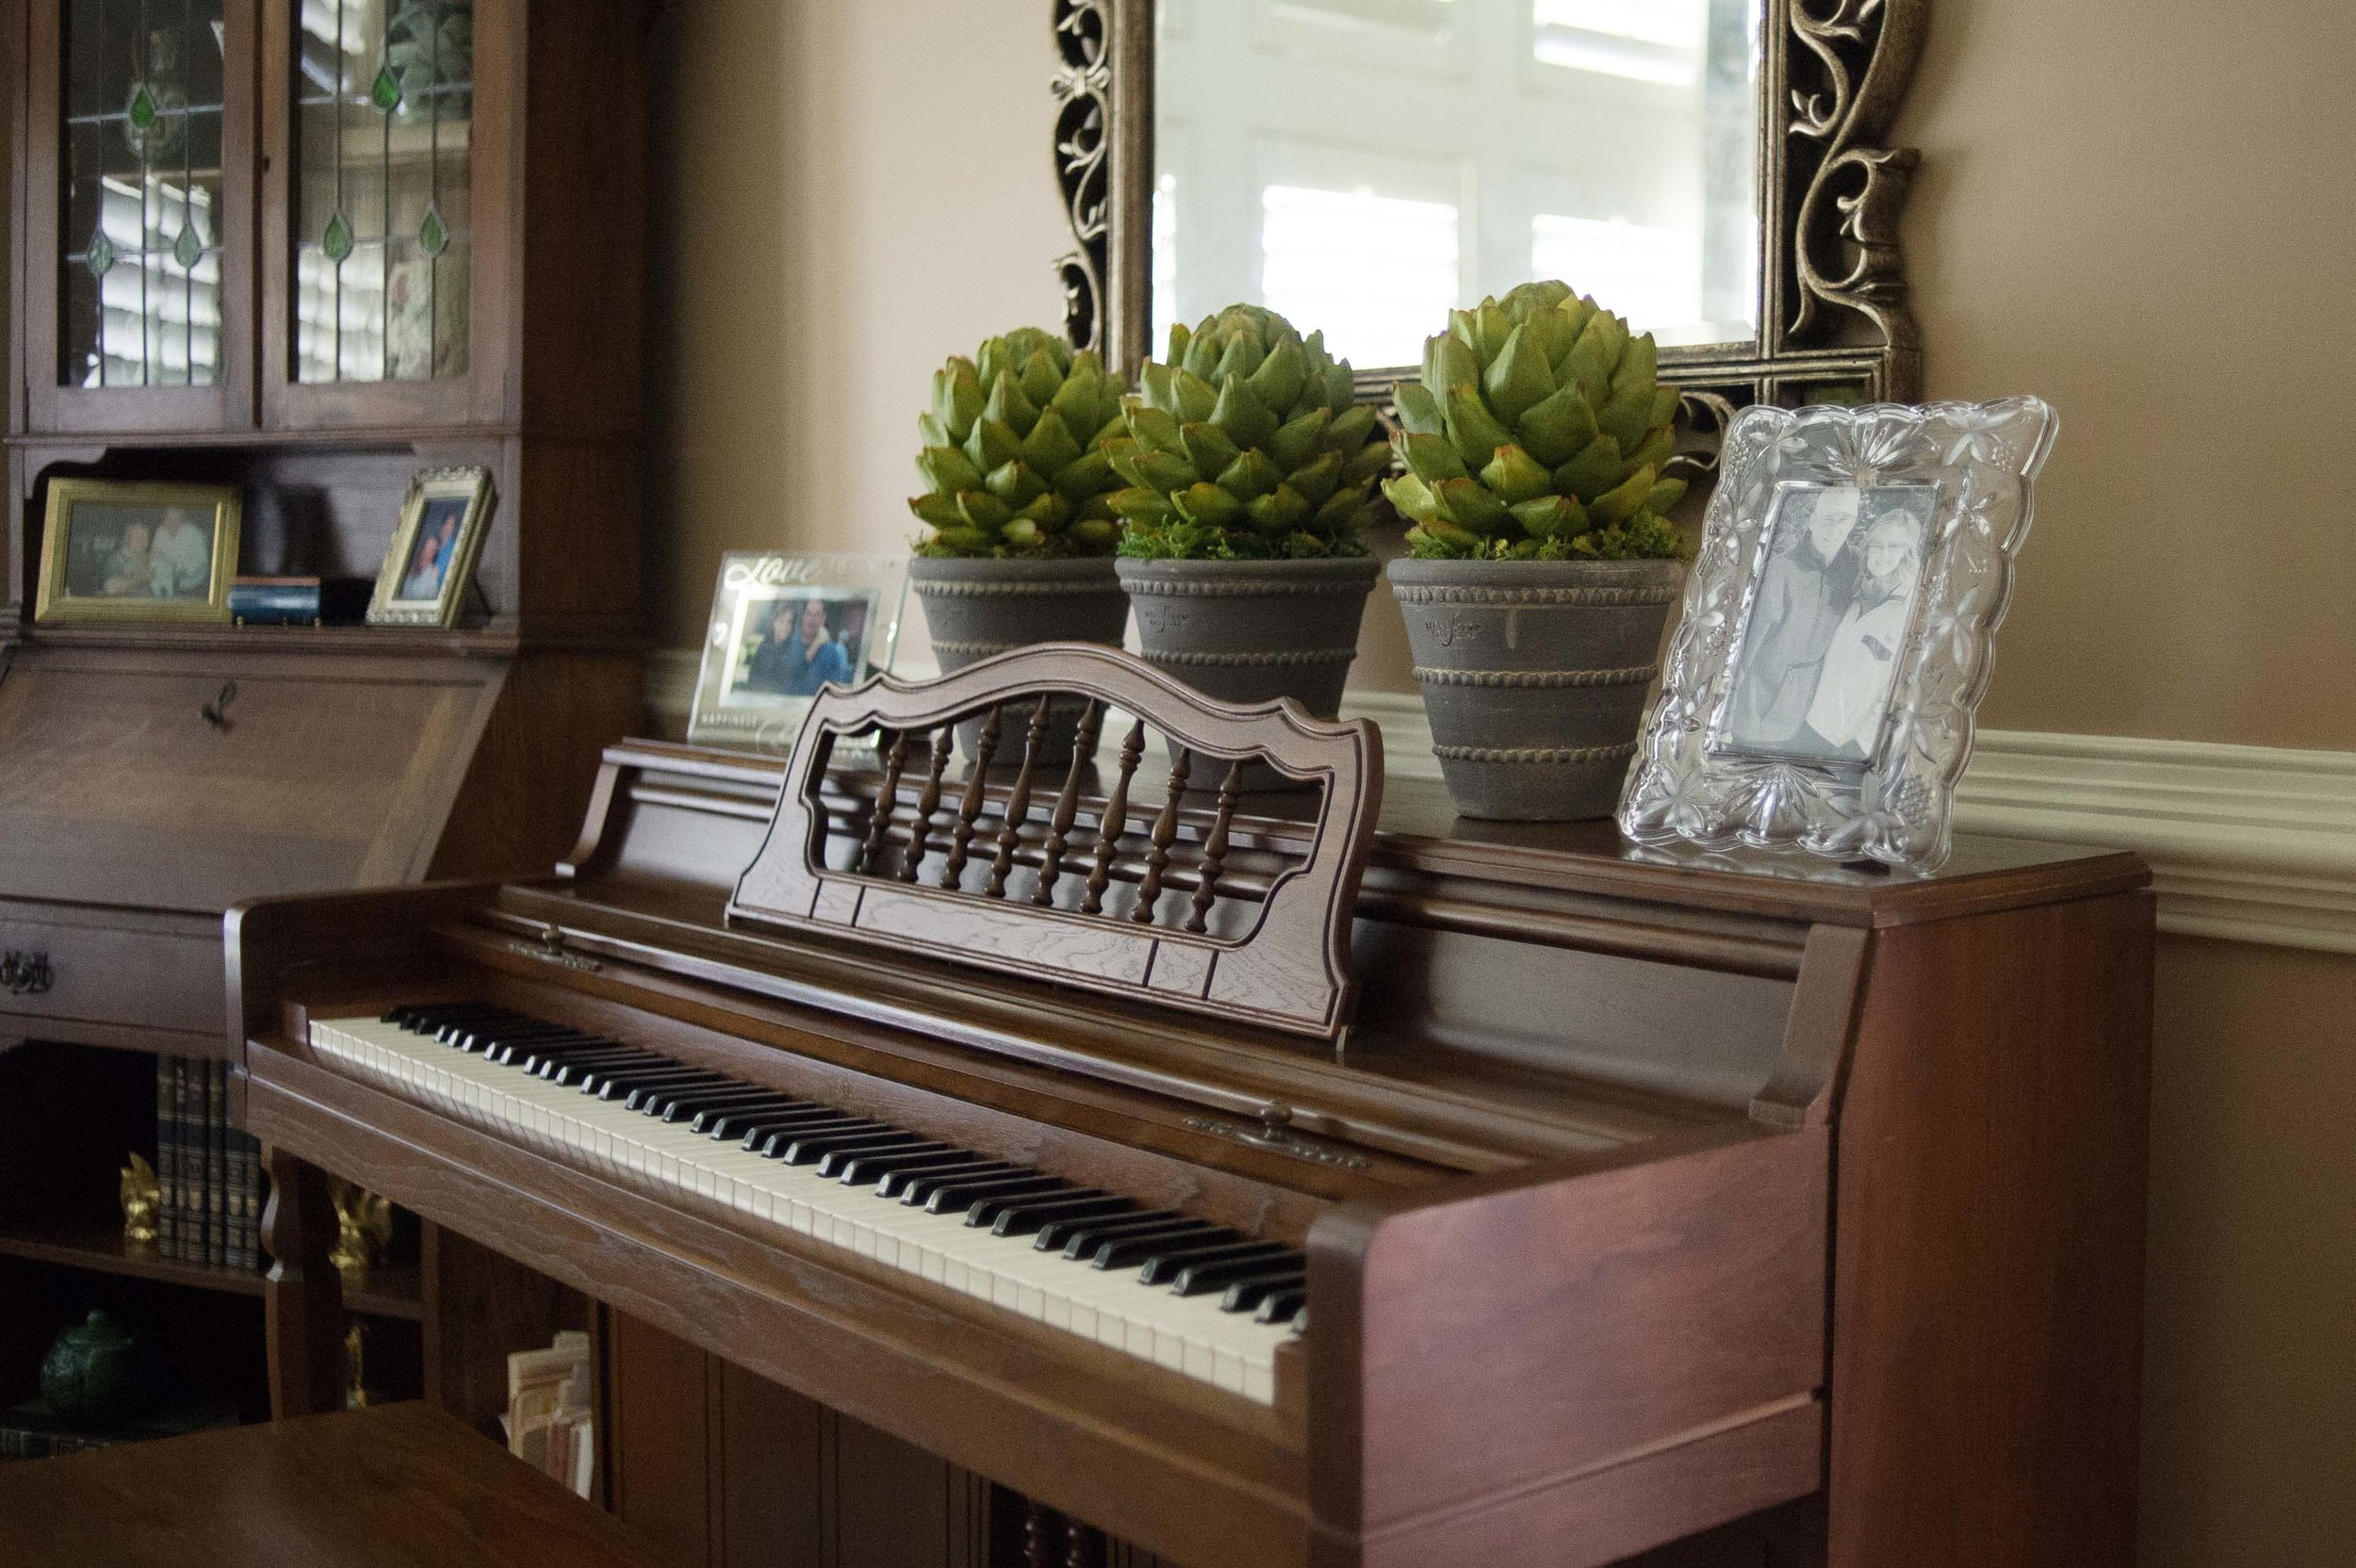 House interior with grand piano